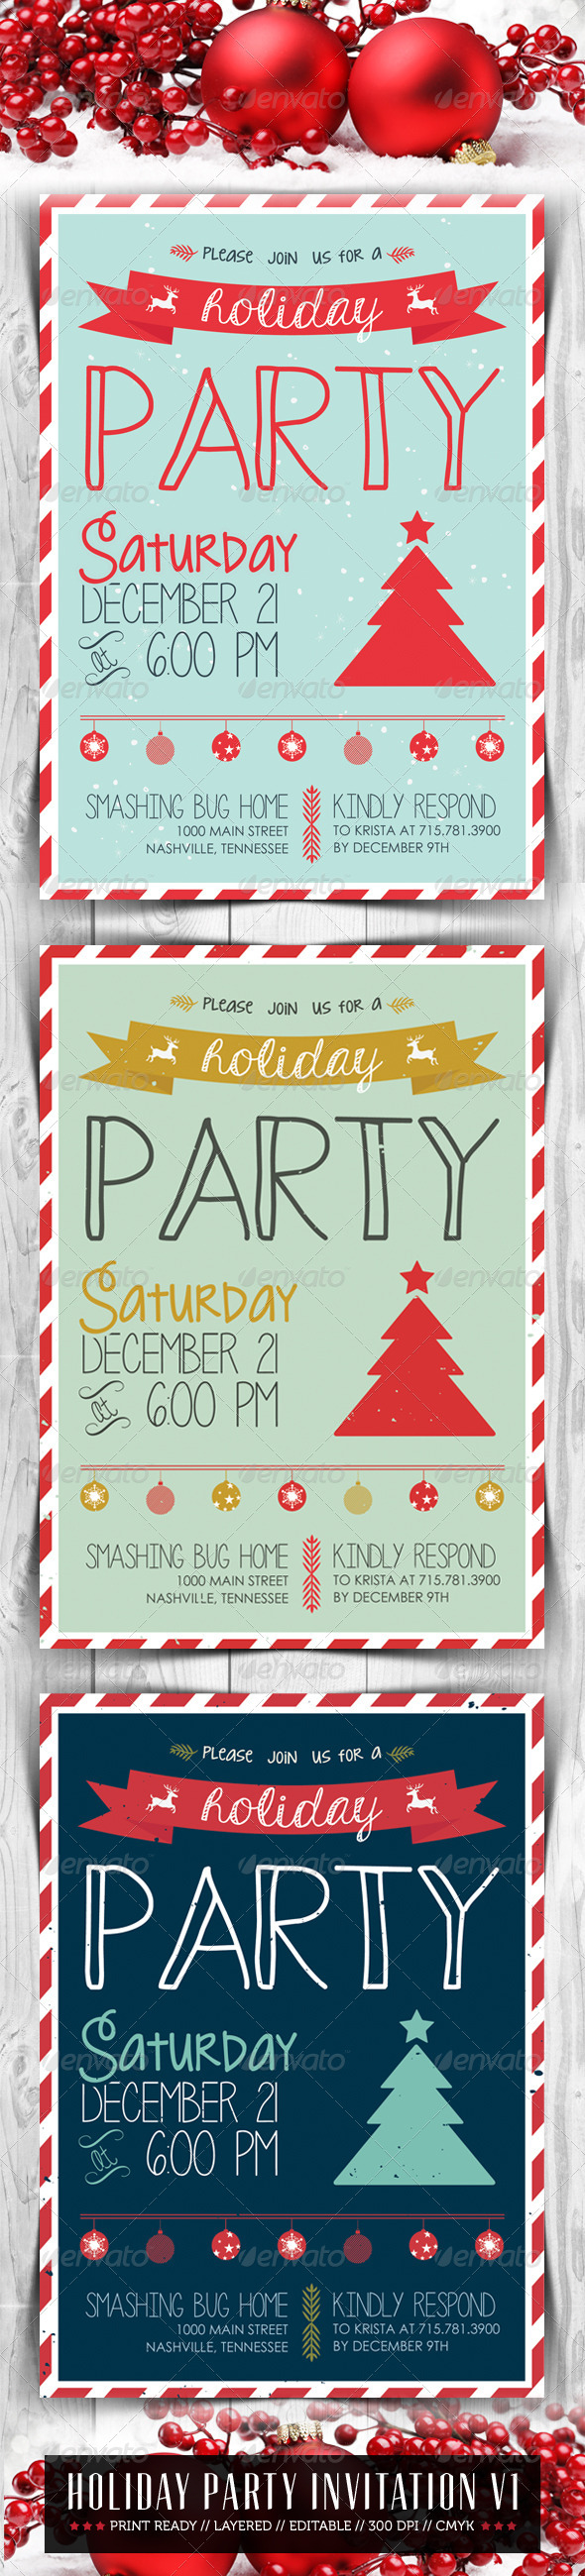 GraphicRiver Holiday Party Invitation V1 6372902